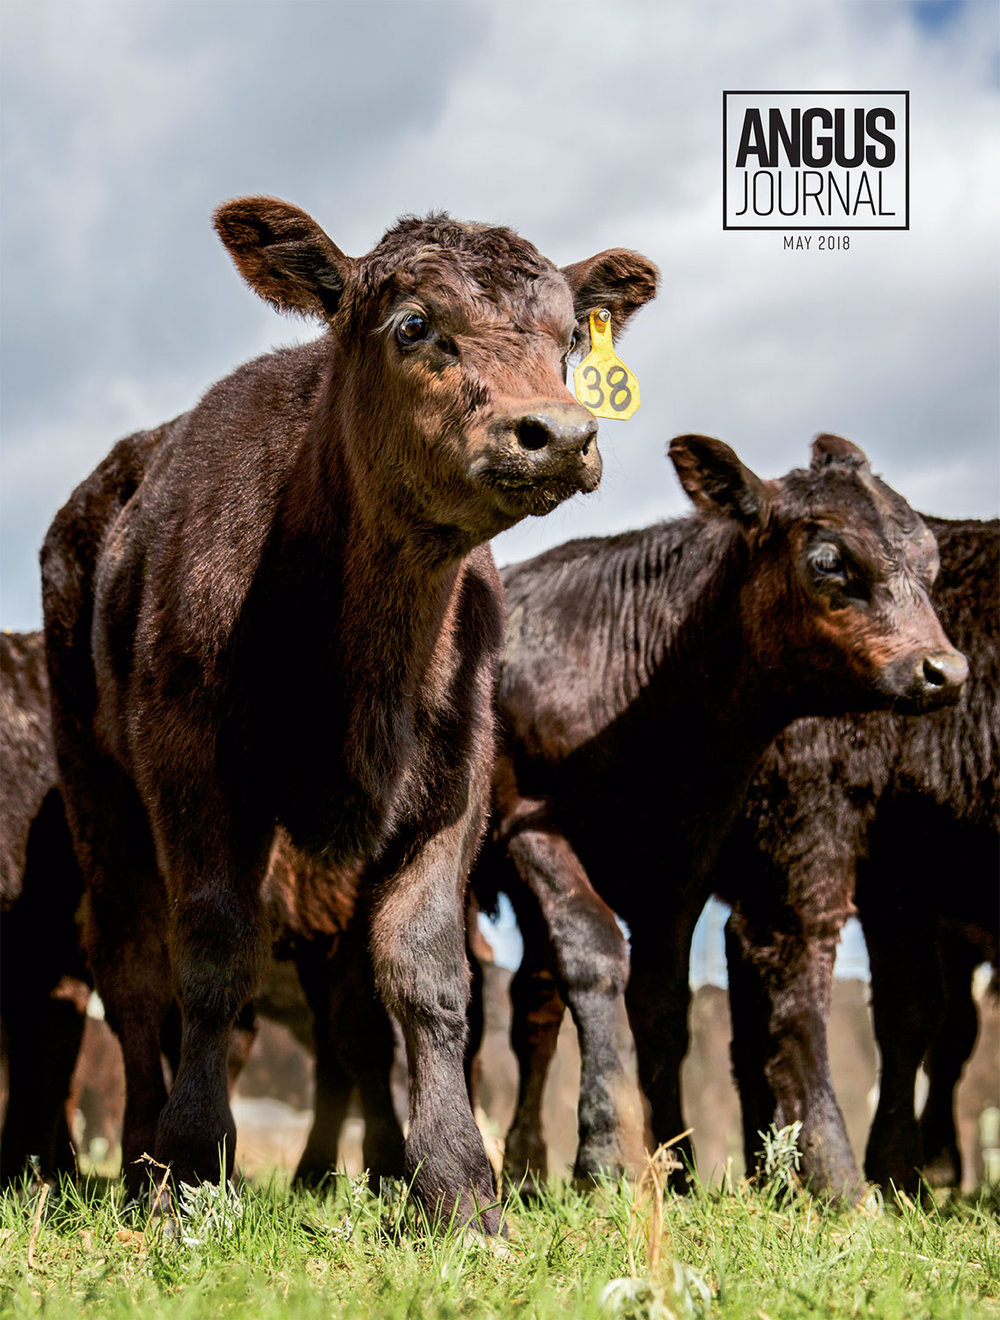 Photos of Black Angus Calves on Cover of Angus Journal